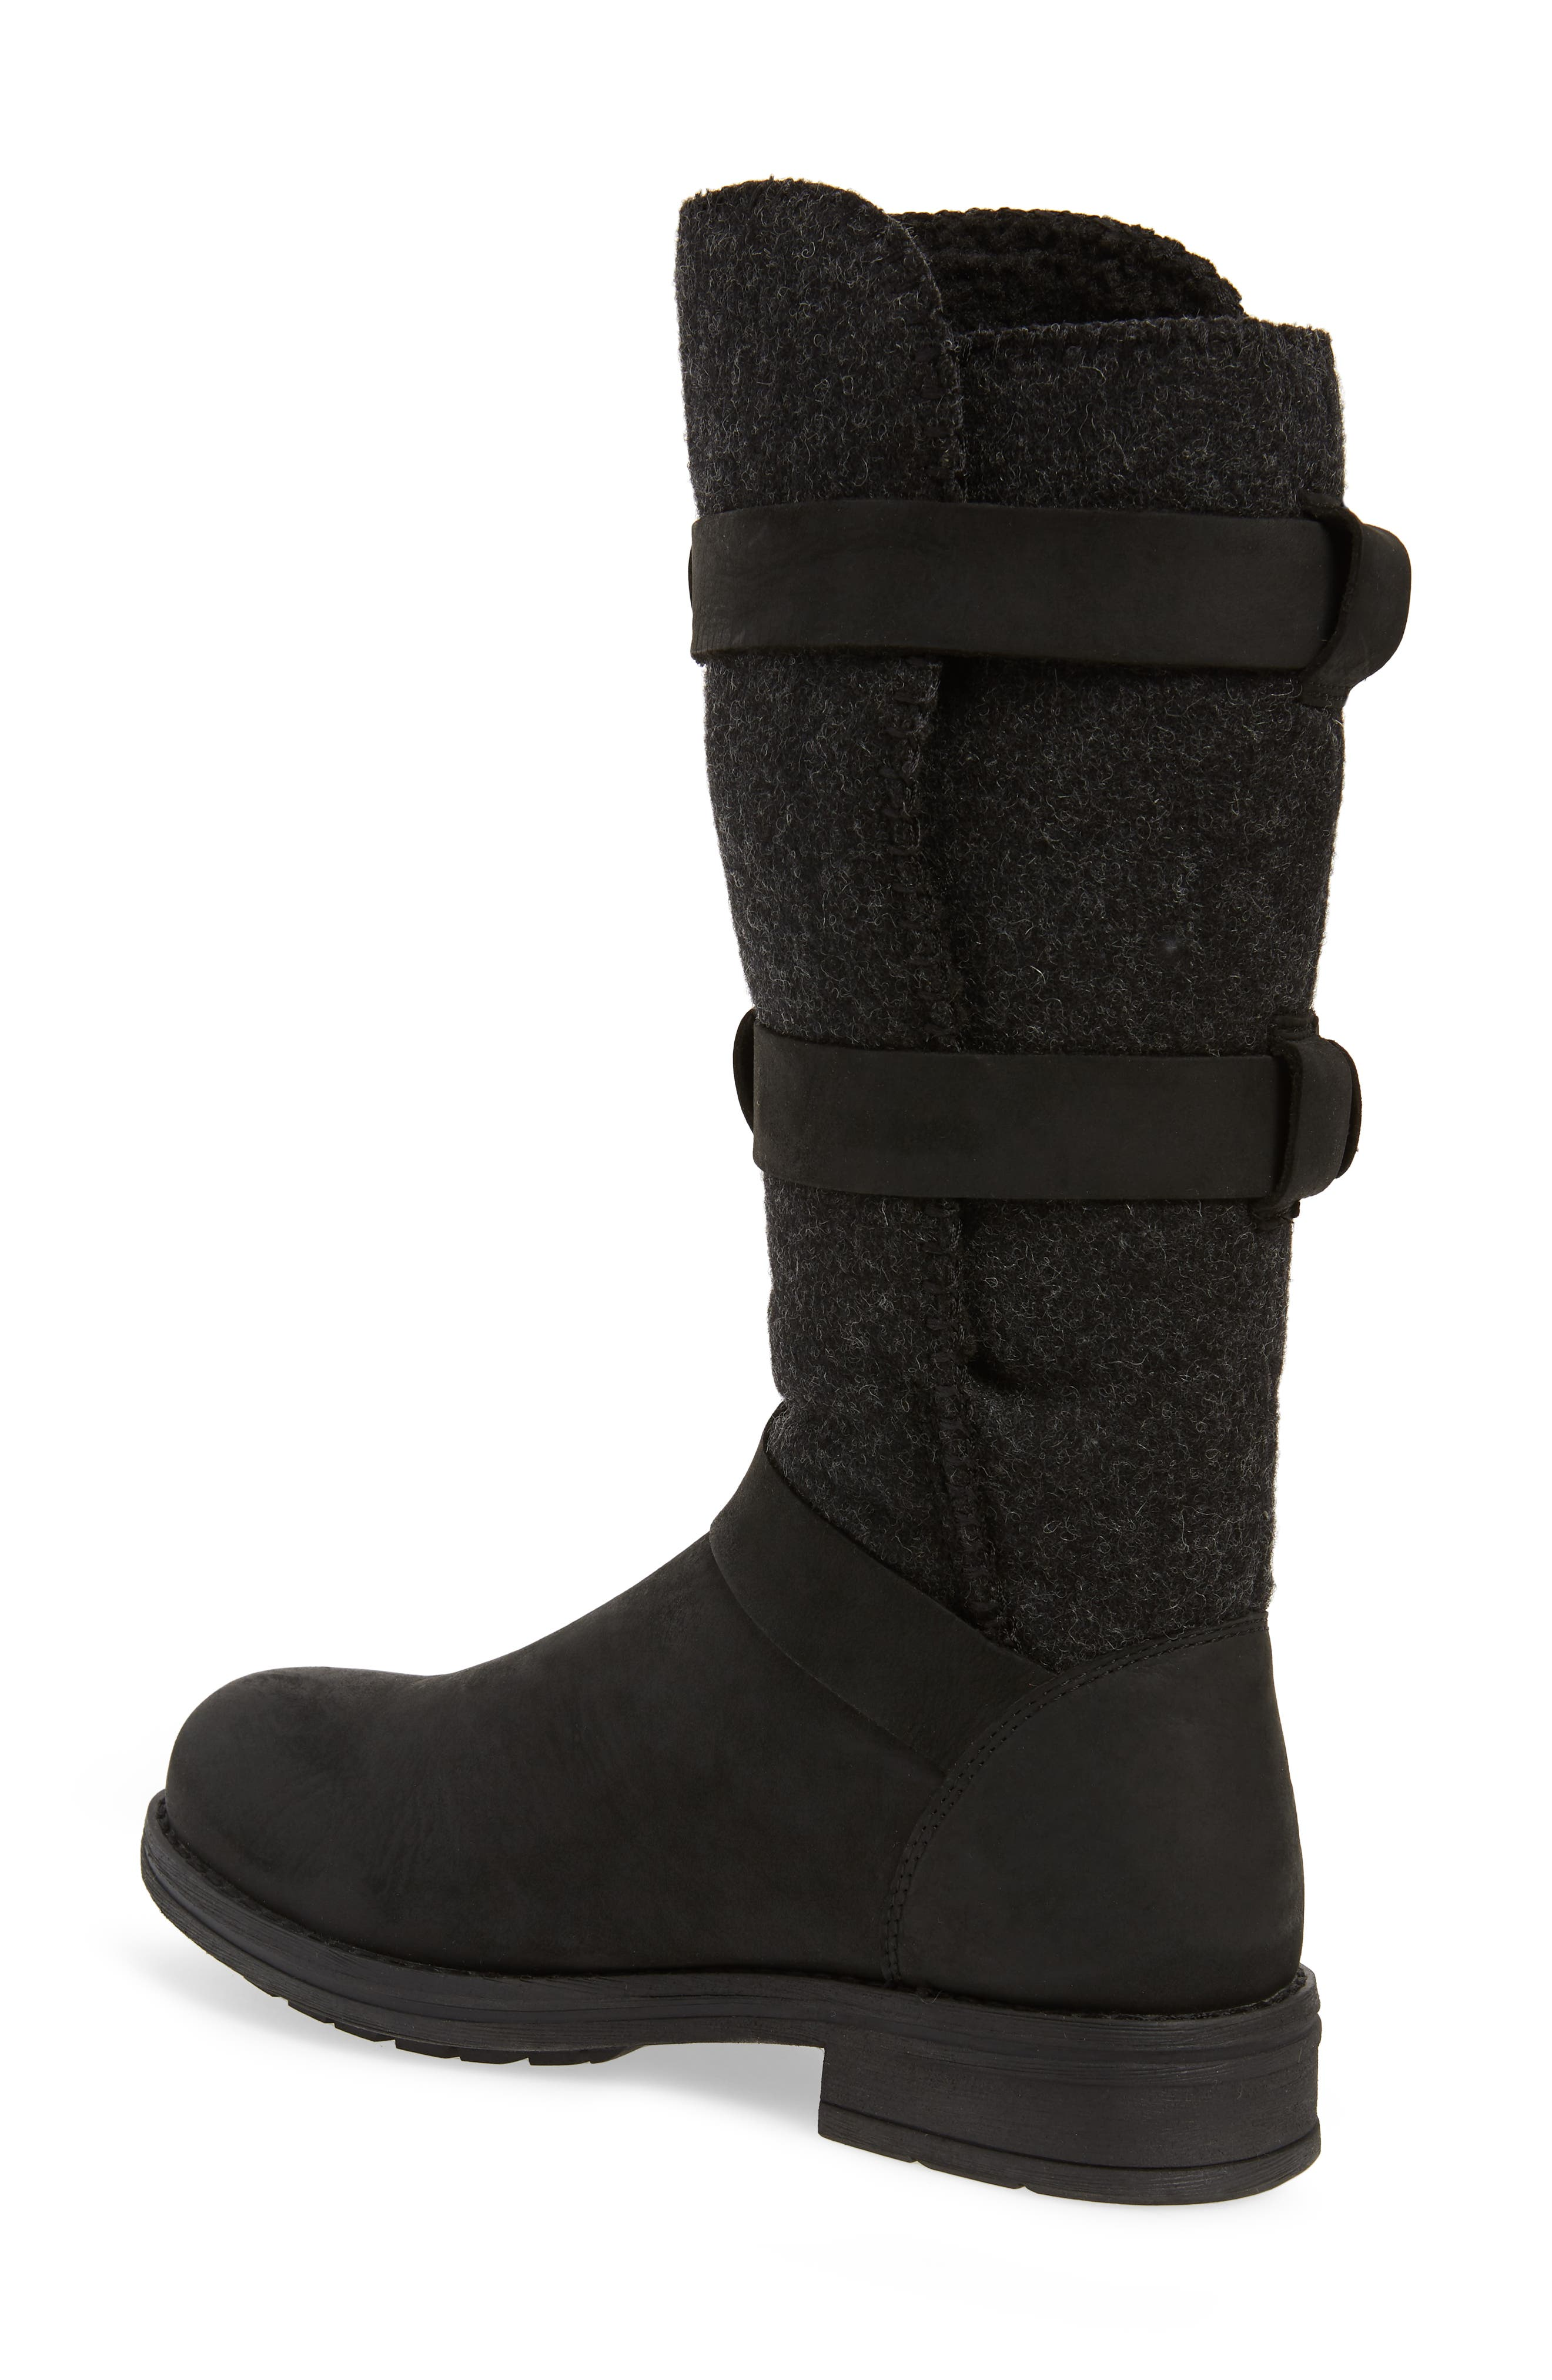 Frontier Boot,                             Alternate thumbnail 2, color,                             BLACK LEATHER